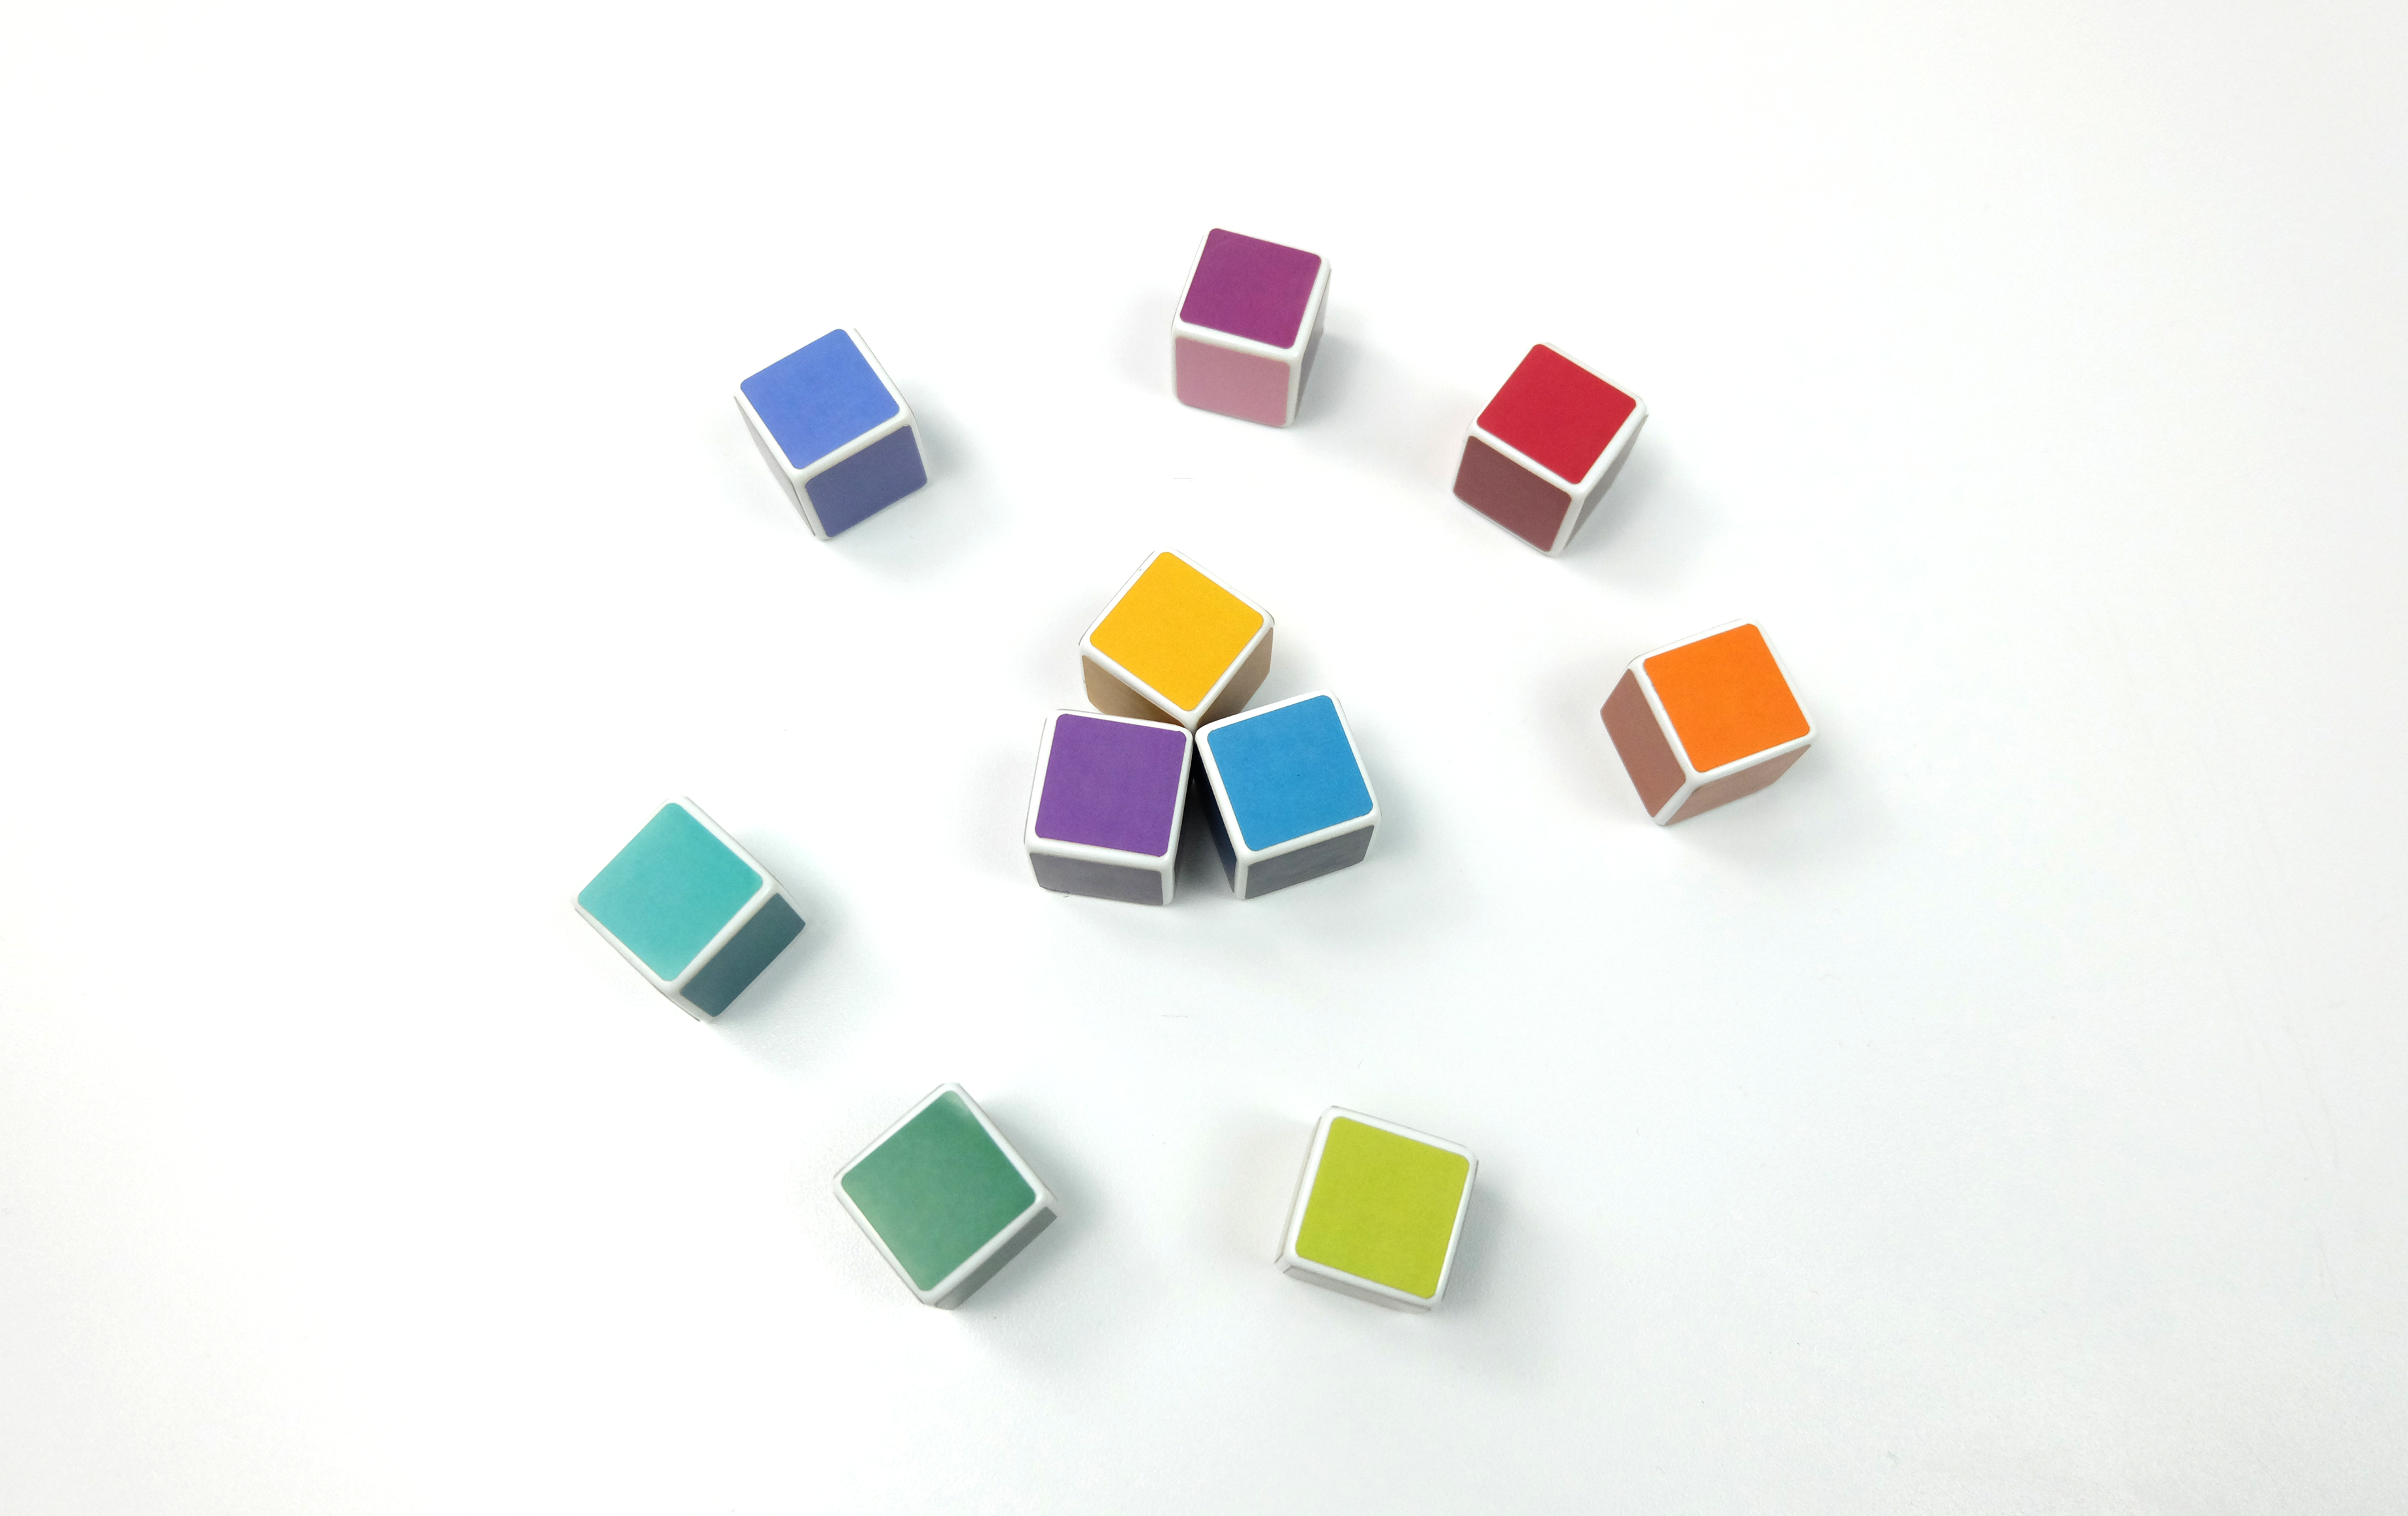 Three colorful dice are displayed together inside of a larger ring of colorful dice arranged in a color wheel on a white table.